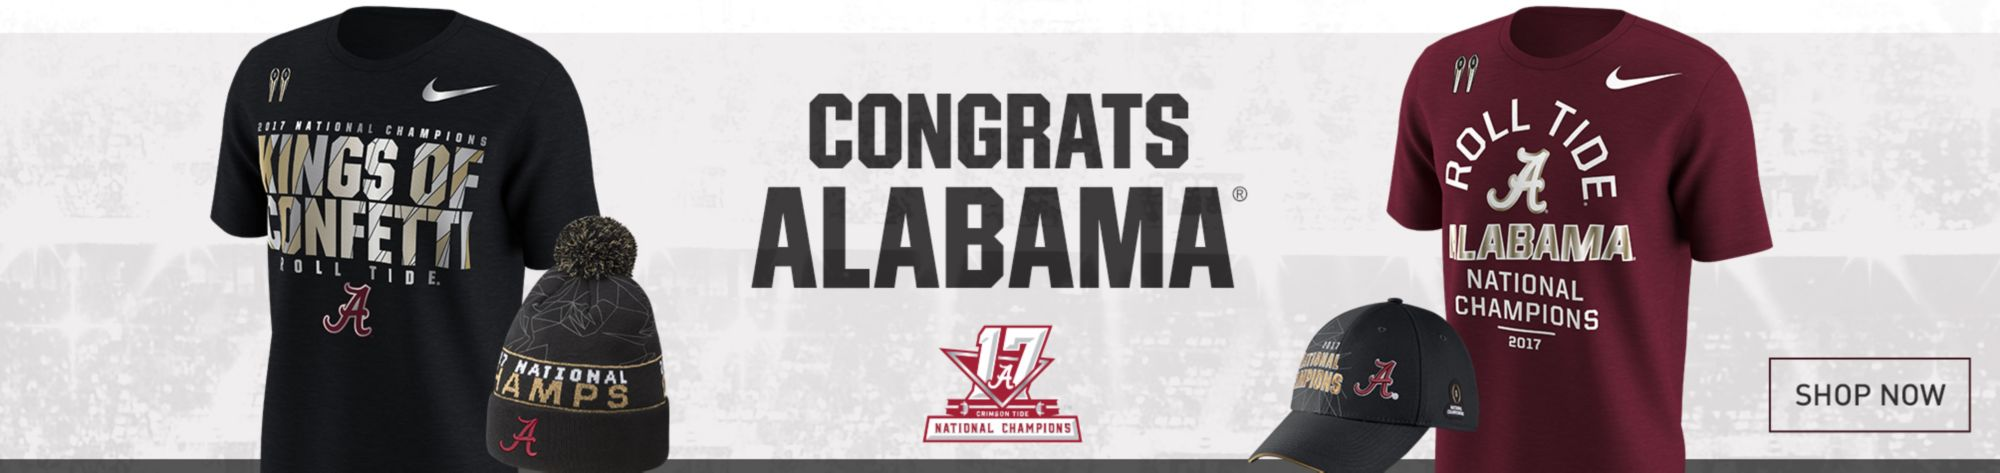 Congrats Alabama - National Champions - Shop Now